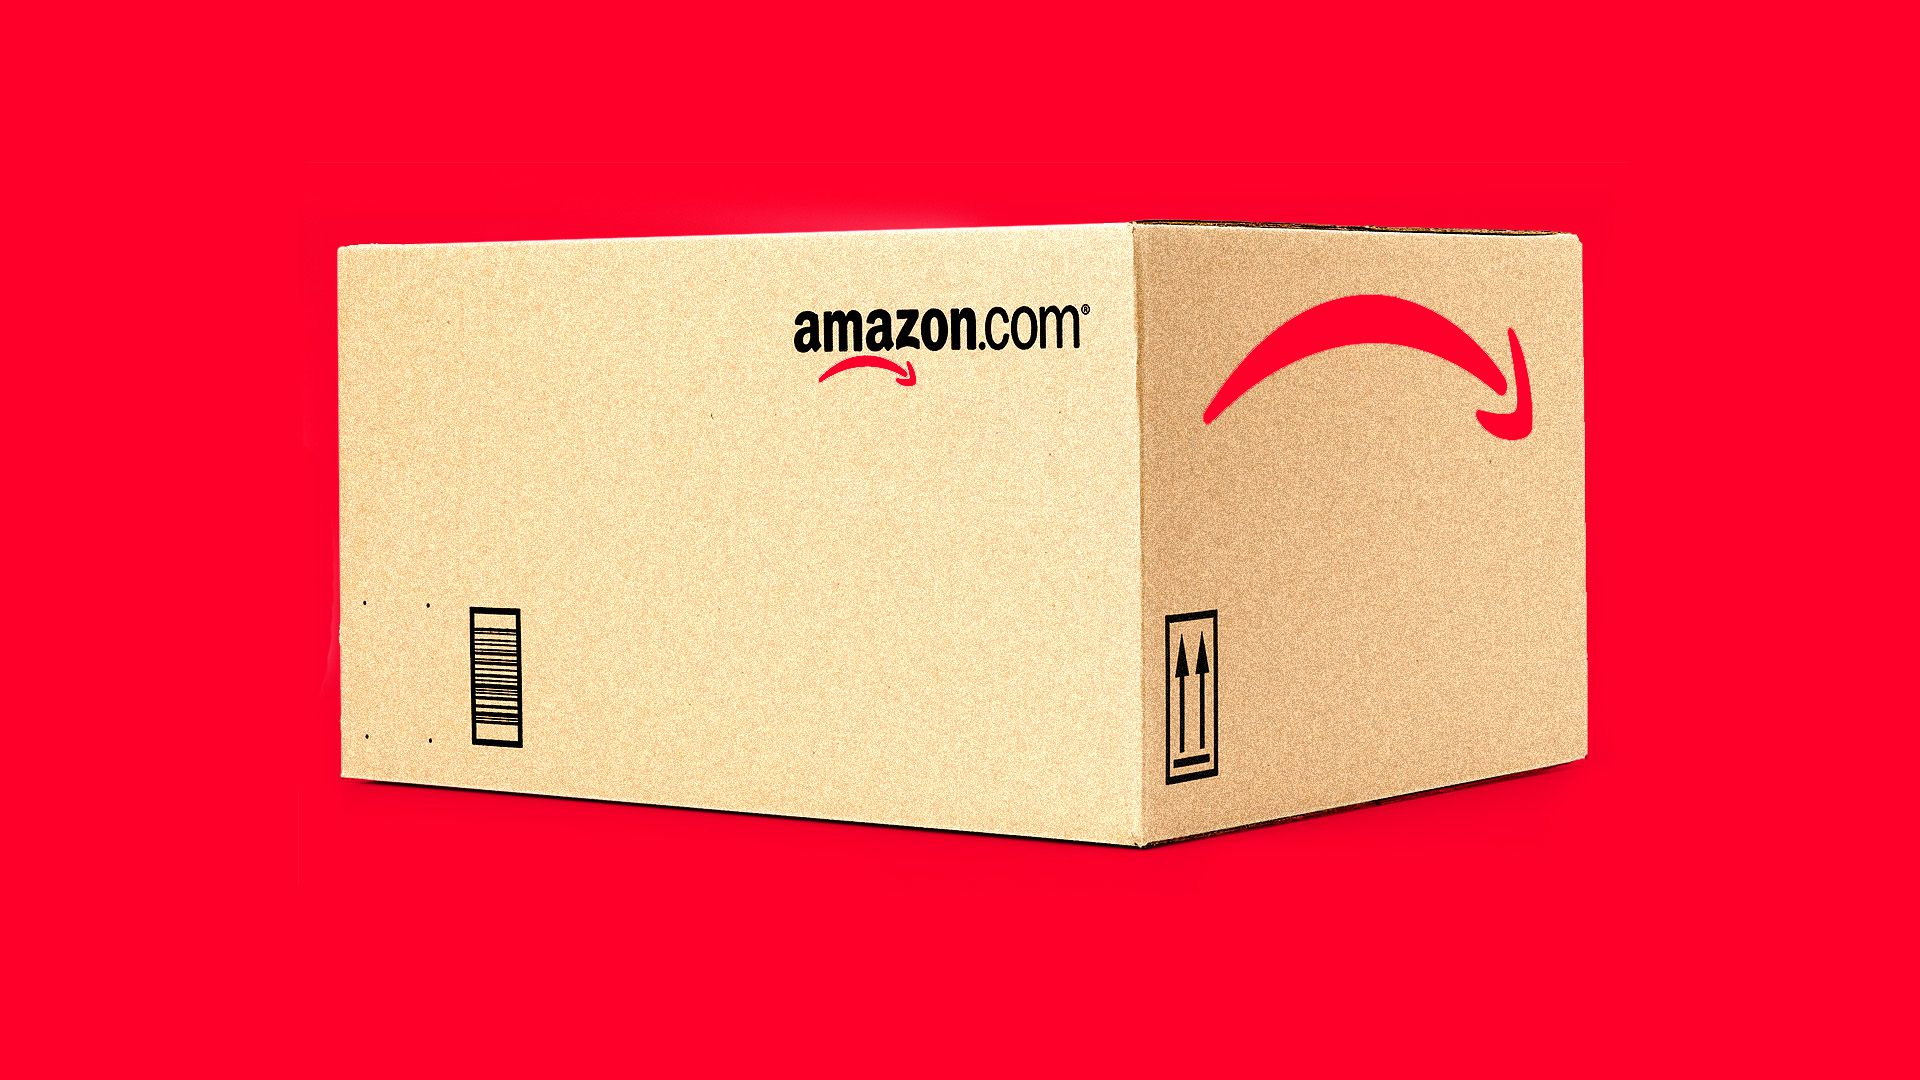 An Amazon box with a red arrow pointing down, against a red backdrop